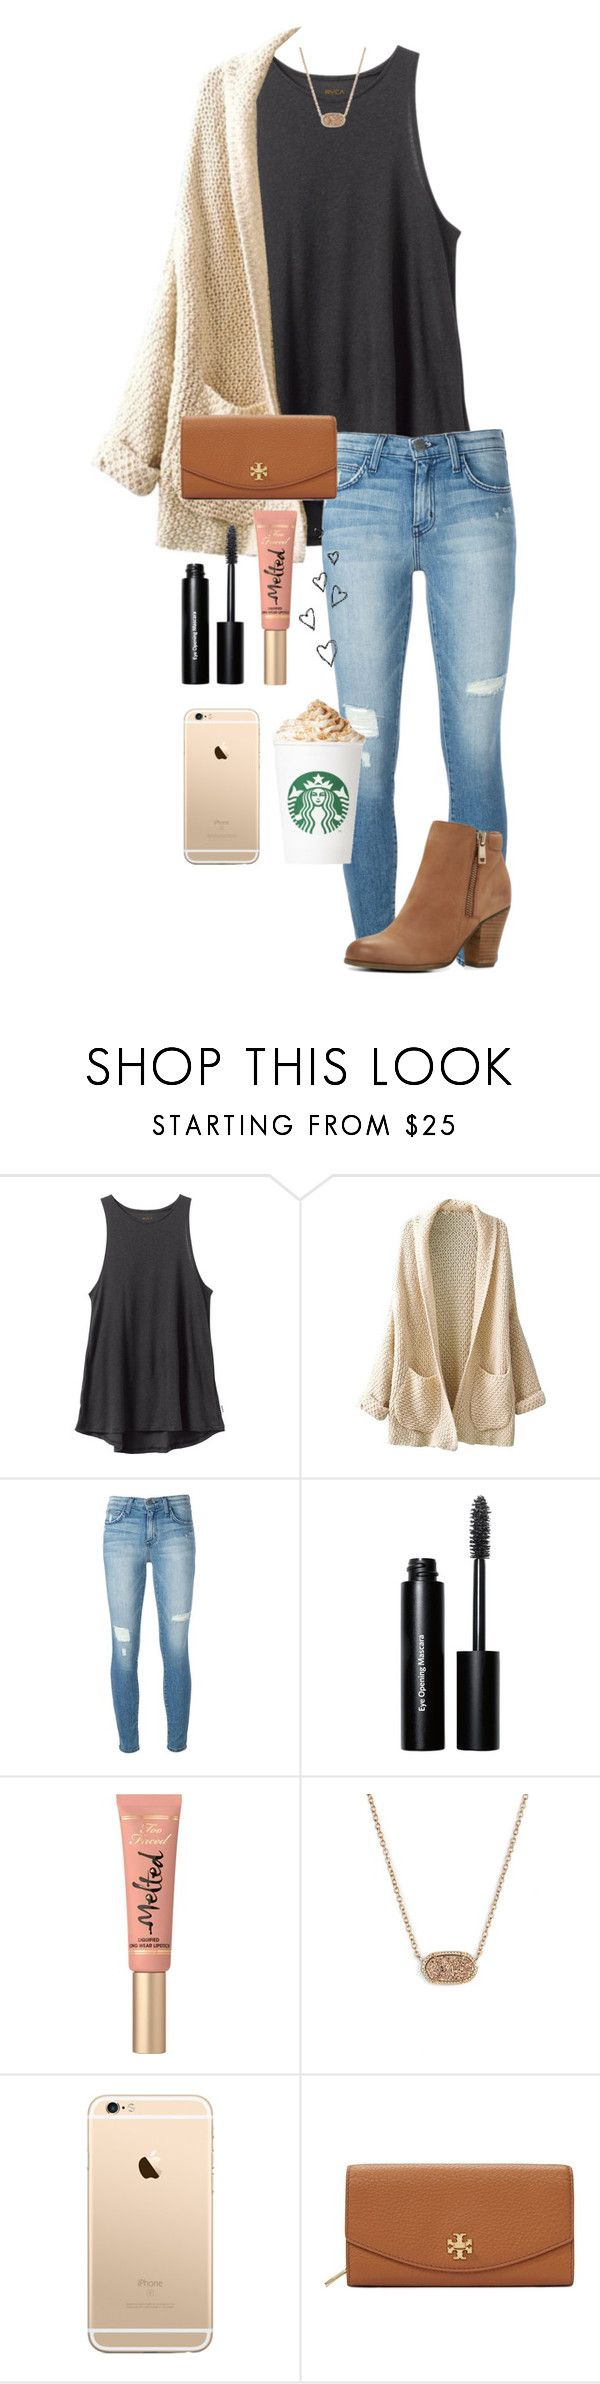 """""""cutie pie"""" by whalesandprints ❤ liked on Polyvore featuring RVCA, Current/Elliott, Bobbi Brown Cosmetics, Too Faced Cosmetics, Kendra Scott, Tory Burch and ALDO"""